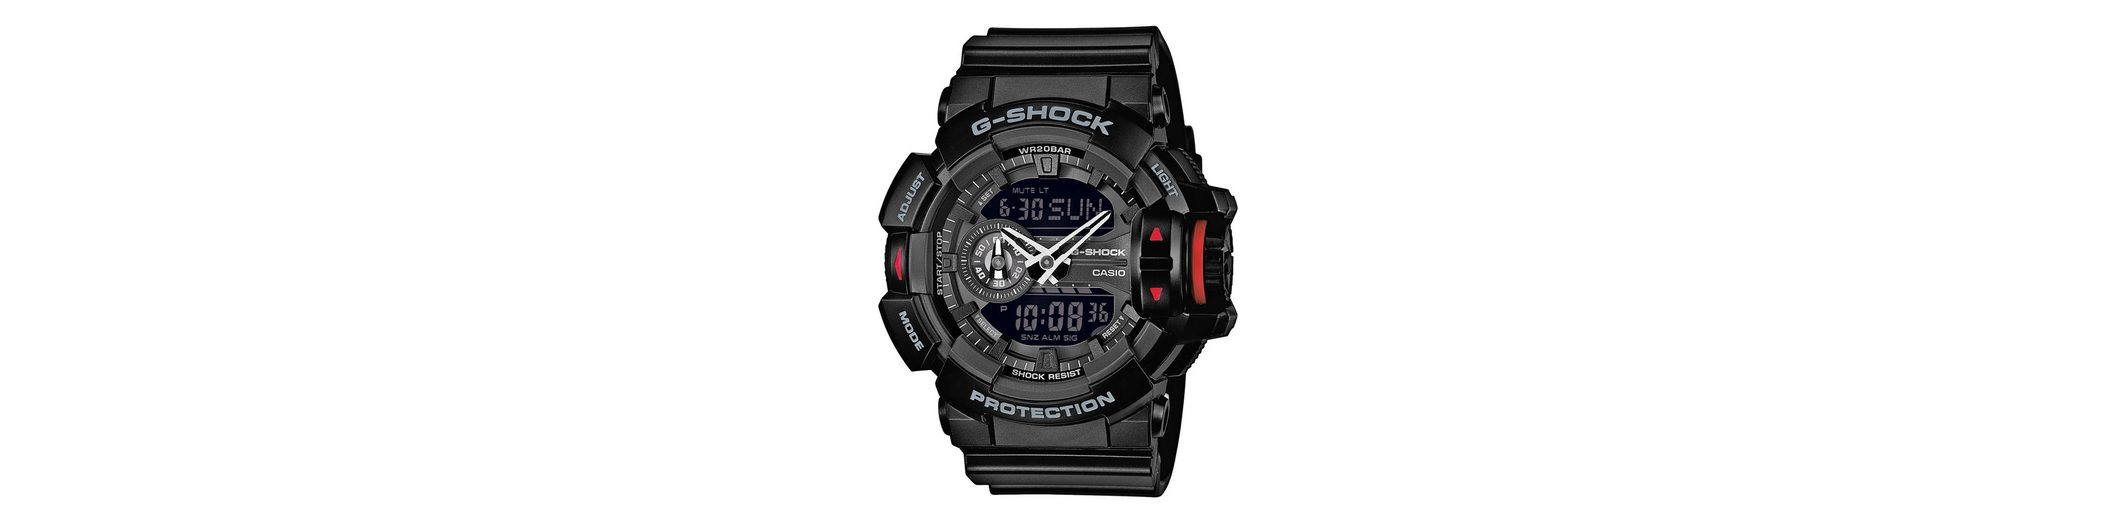 Casio G-Shock Chronograph »GA-400-1BER«